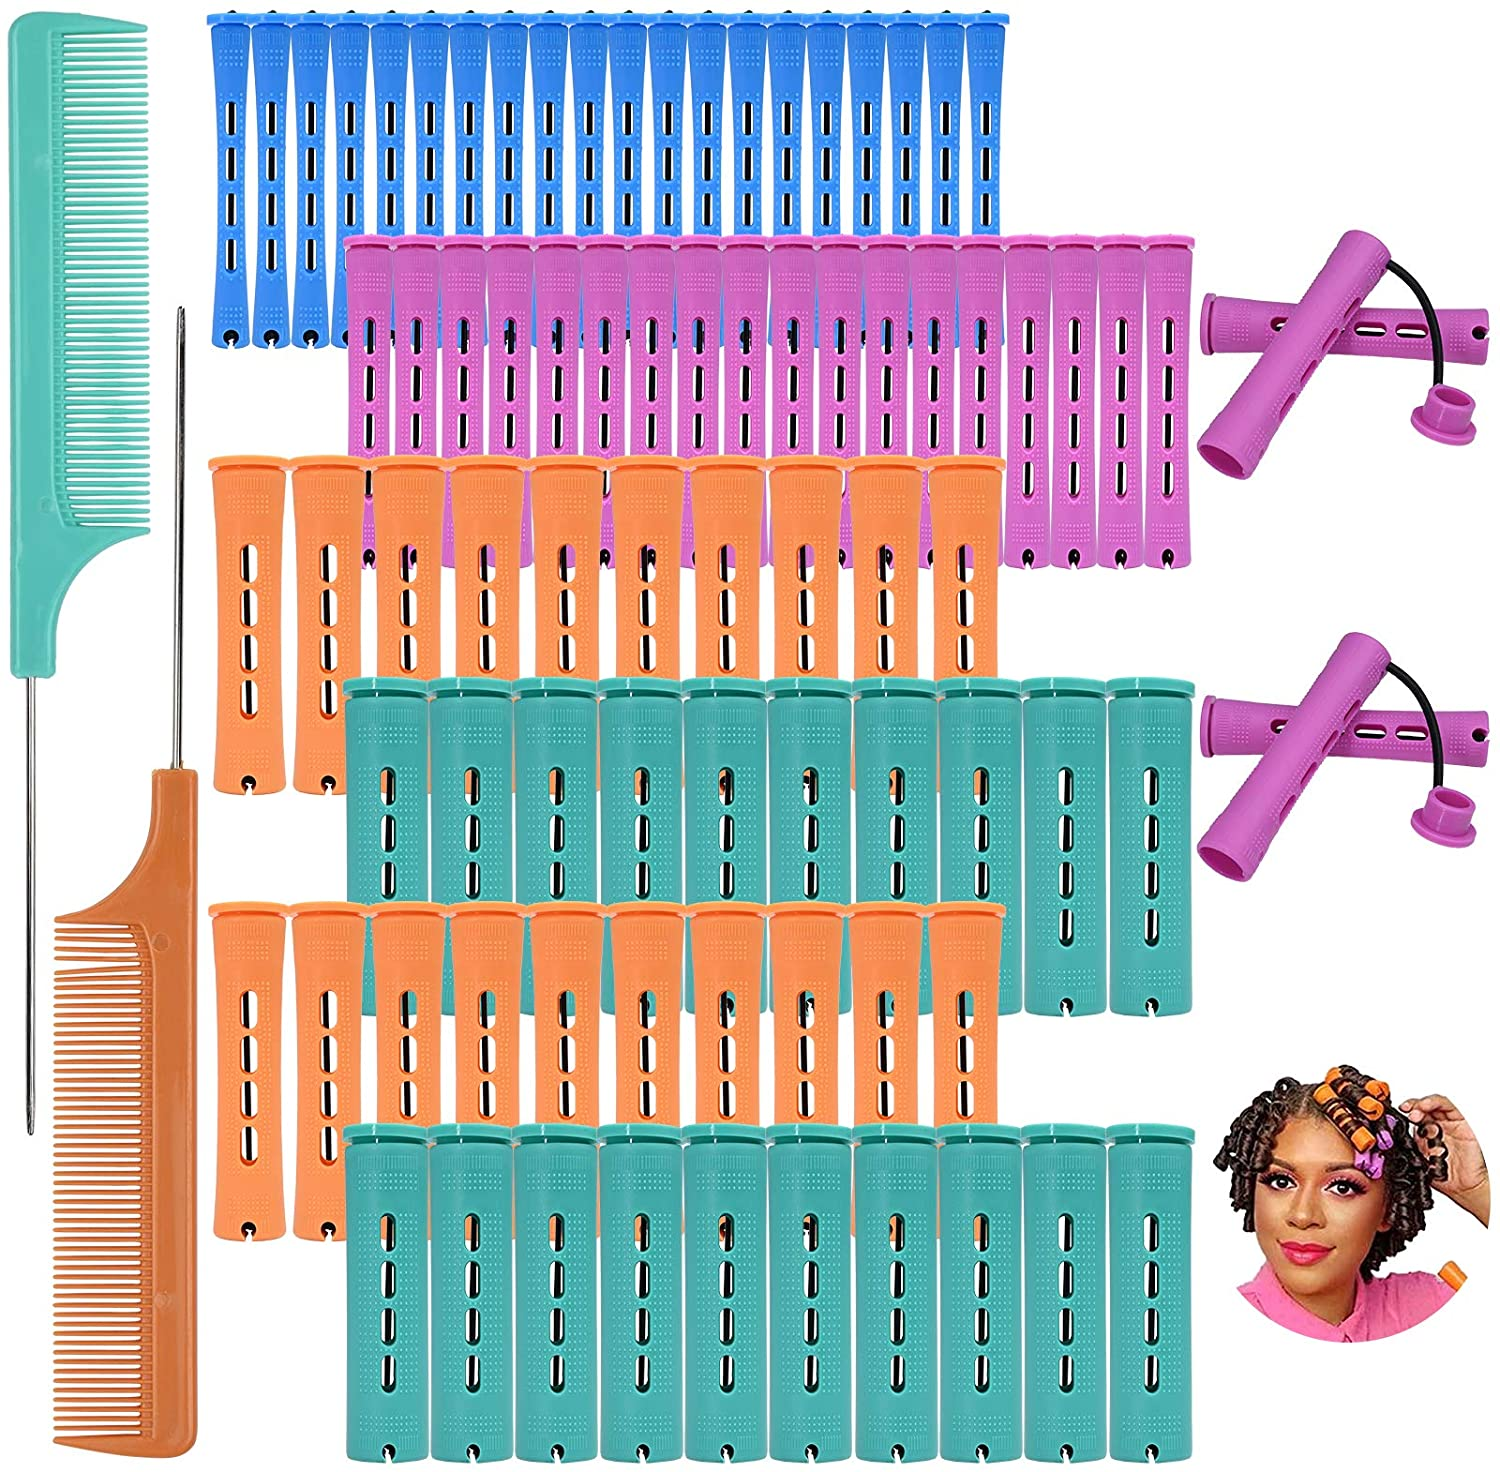 80Pcs Hair Perm Rods Set Cold Wave Perming Rods Hair Roller Curlers Salon Curling Rollers Hairdressing Styling Tools